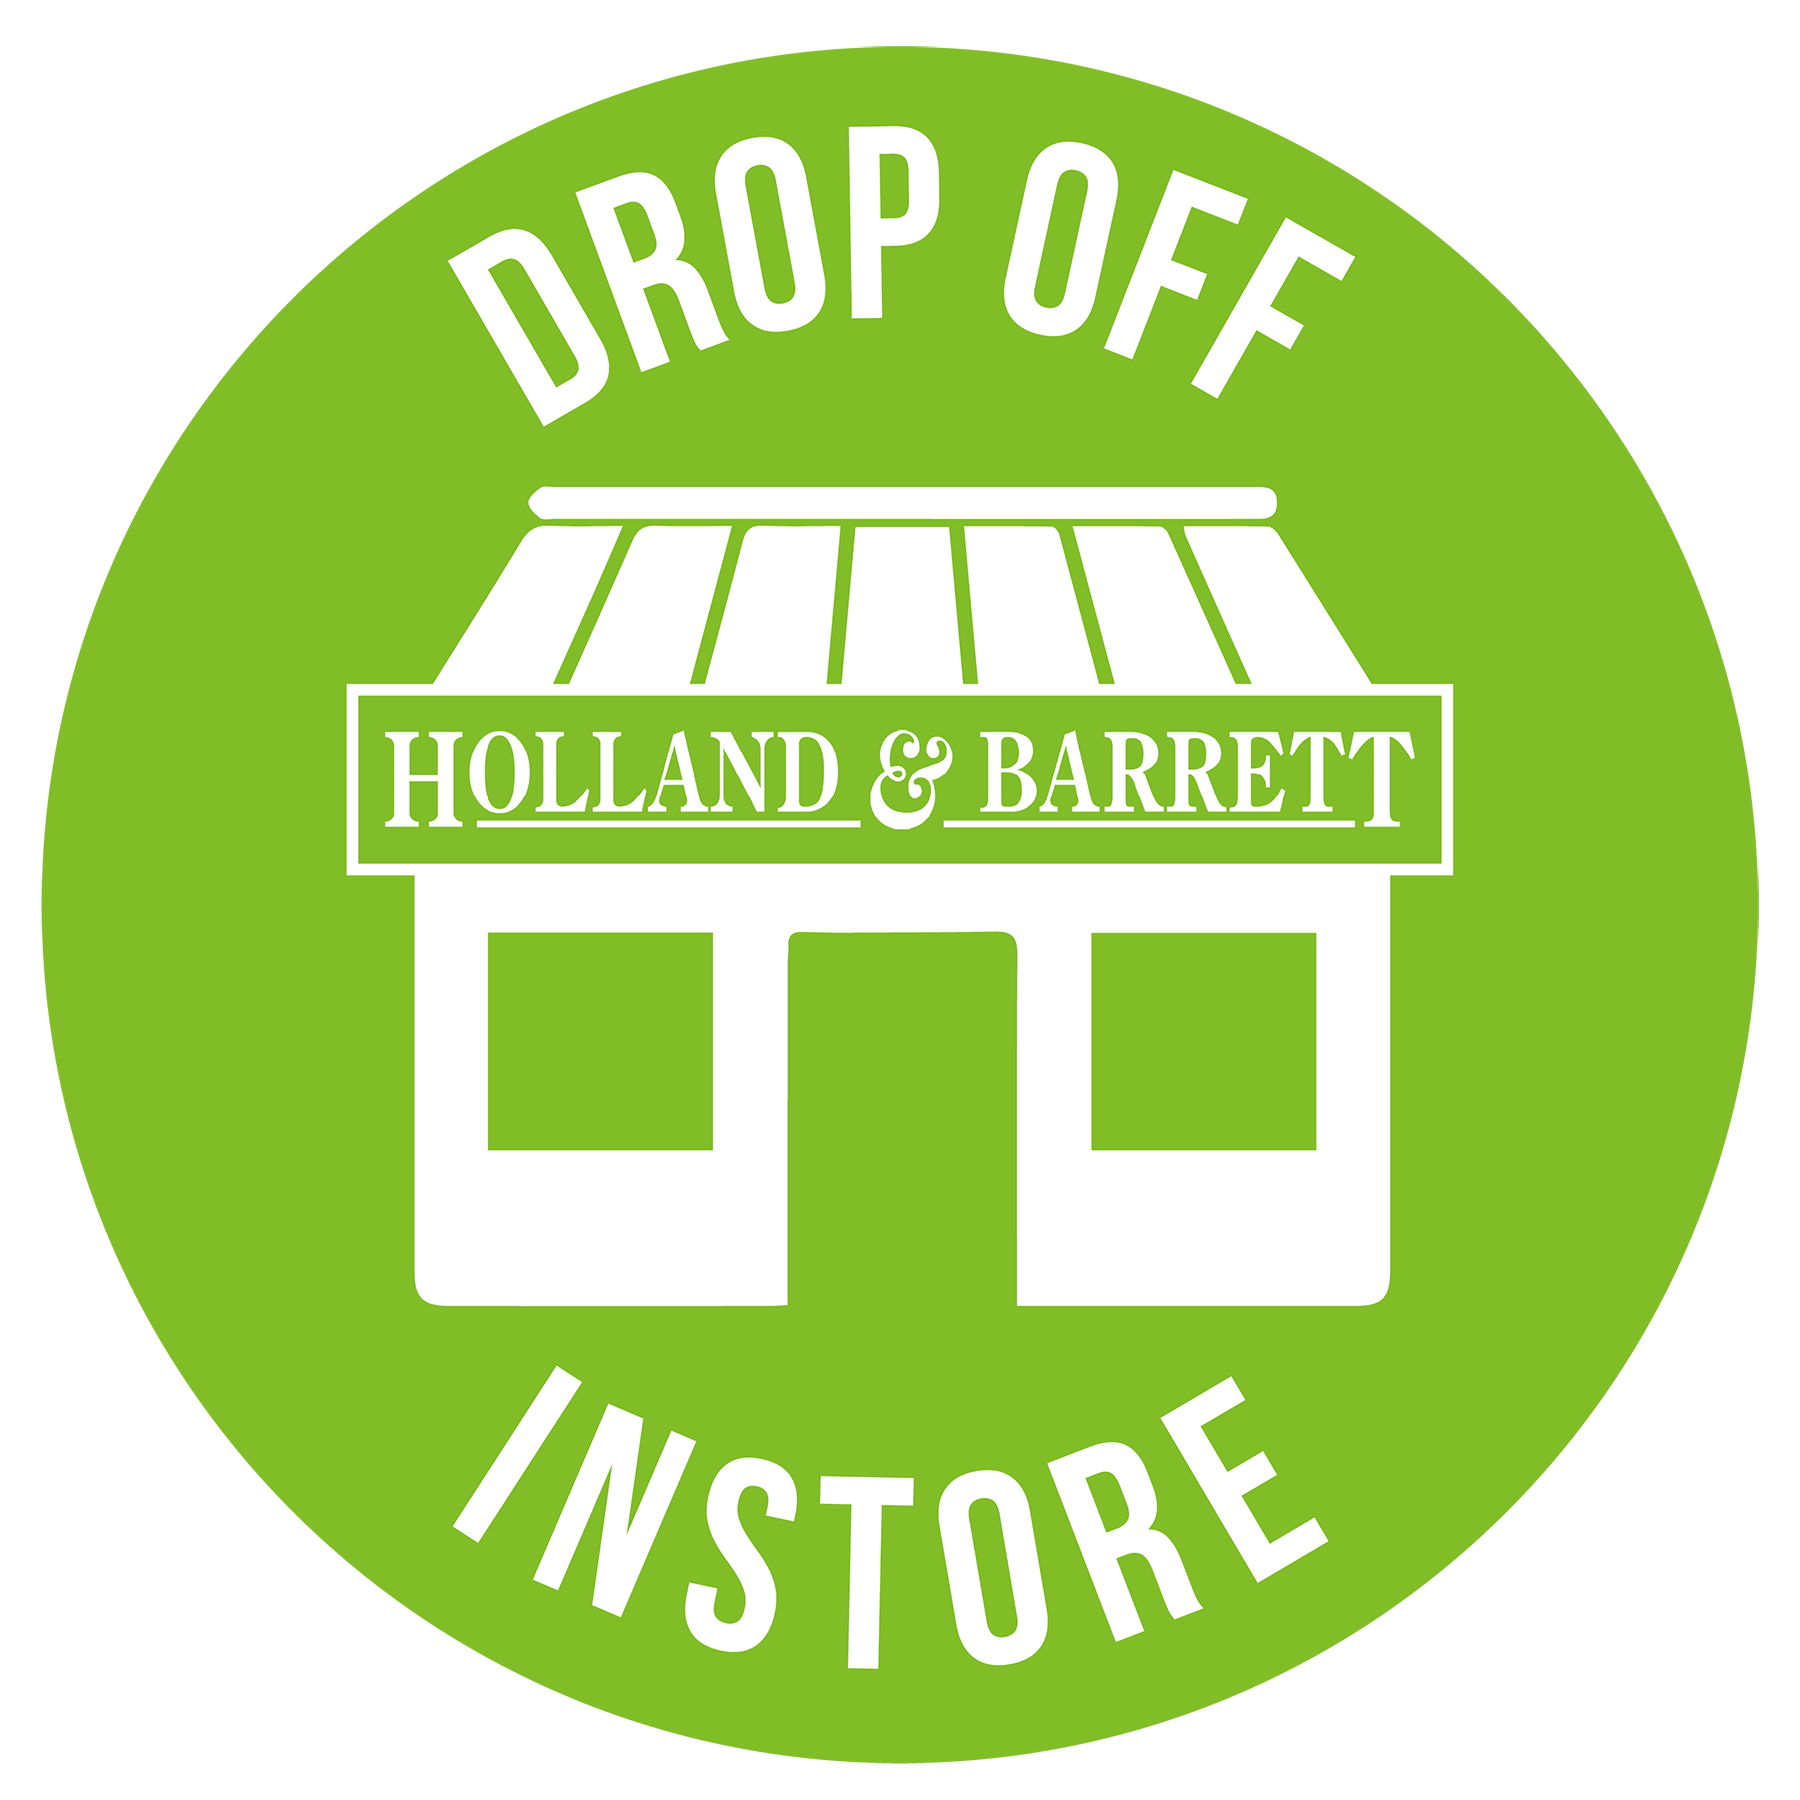 Drop off bottles to Holland and Barrett stores stamp